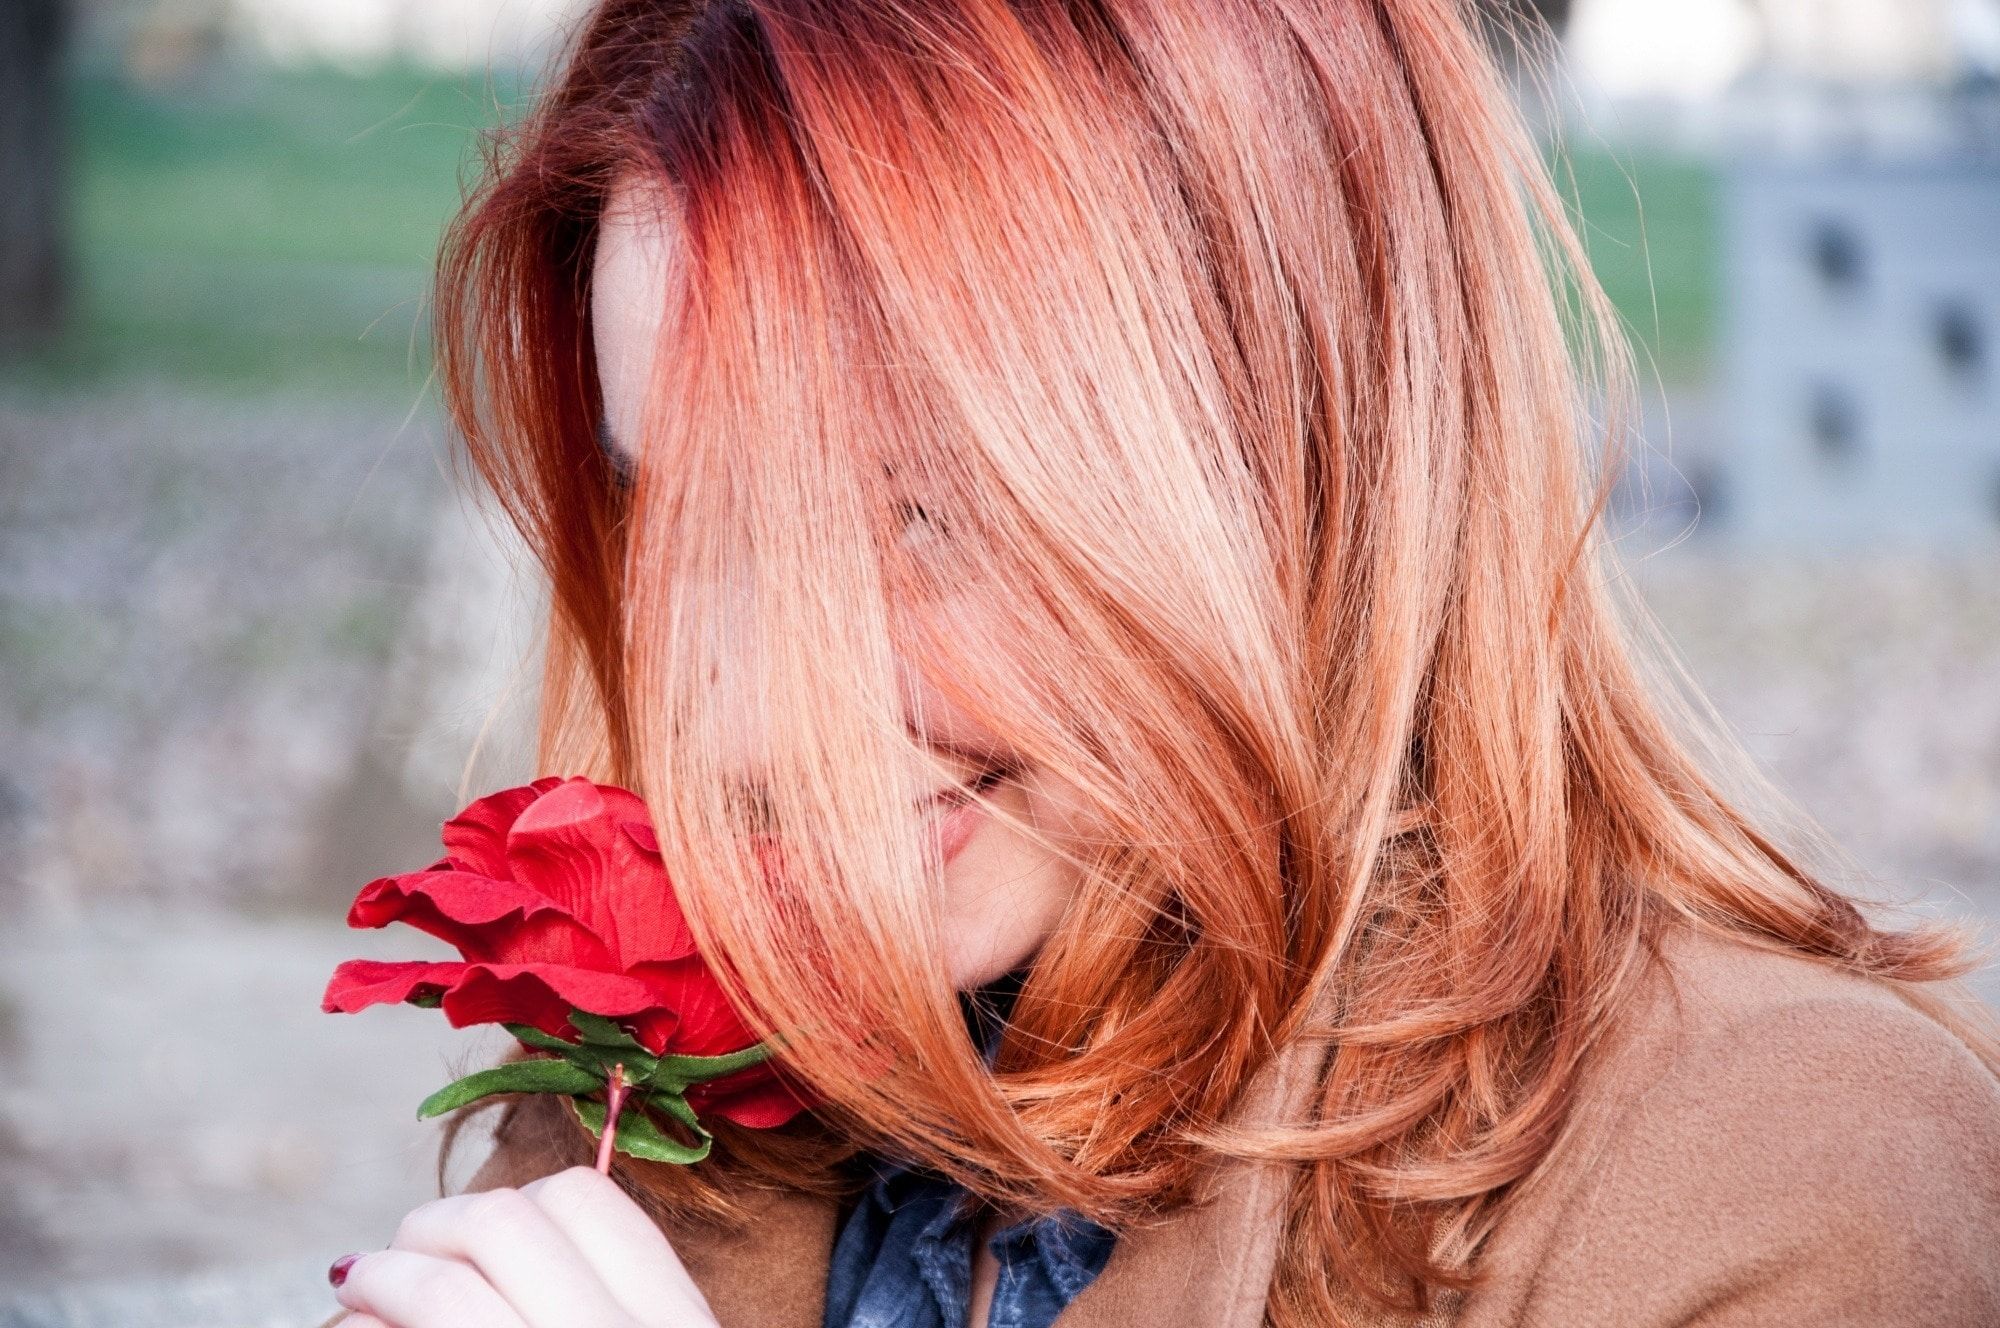 Blorange is a great way to style Red Hair With Highlights